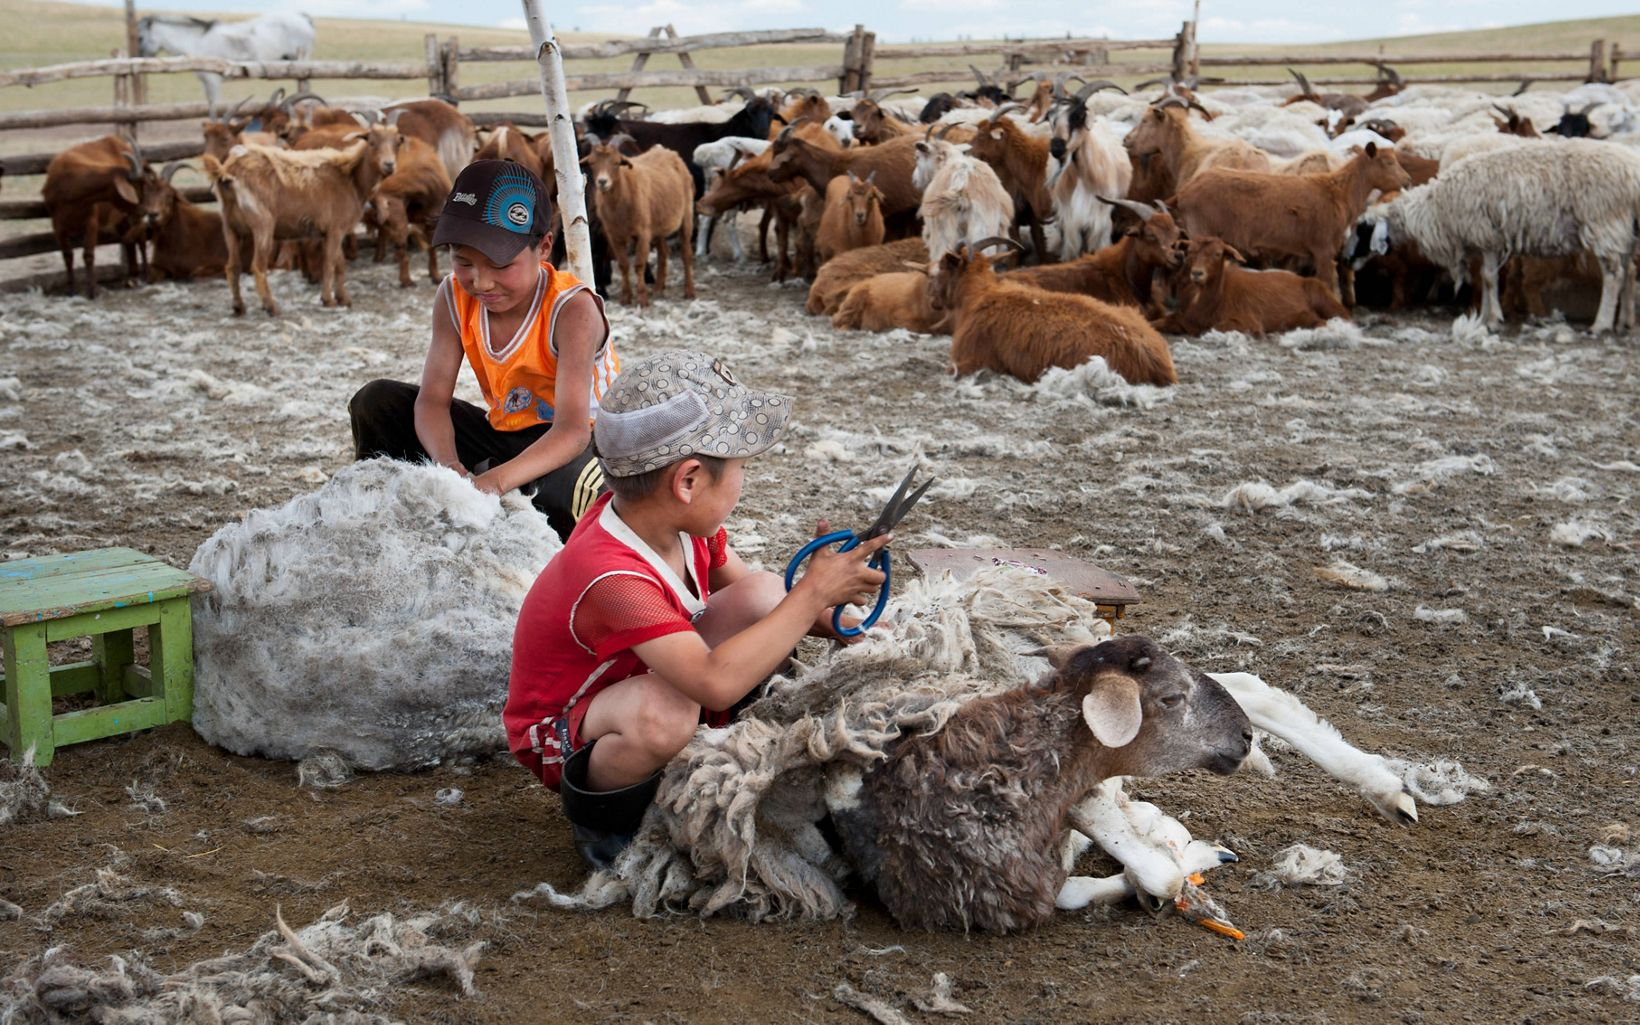 The communities are able to convert a low-value product, raw wool, into valuable commodities such as socks, shoes and bags that can be sold to other herders and tourists.